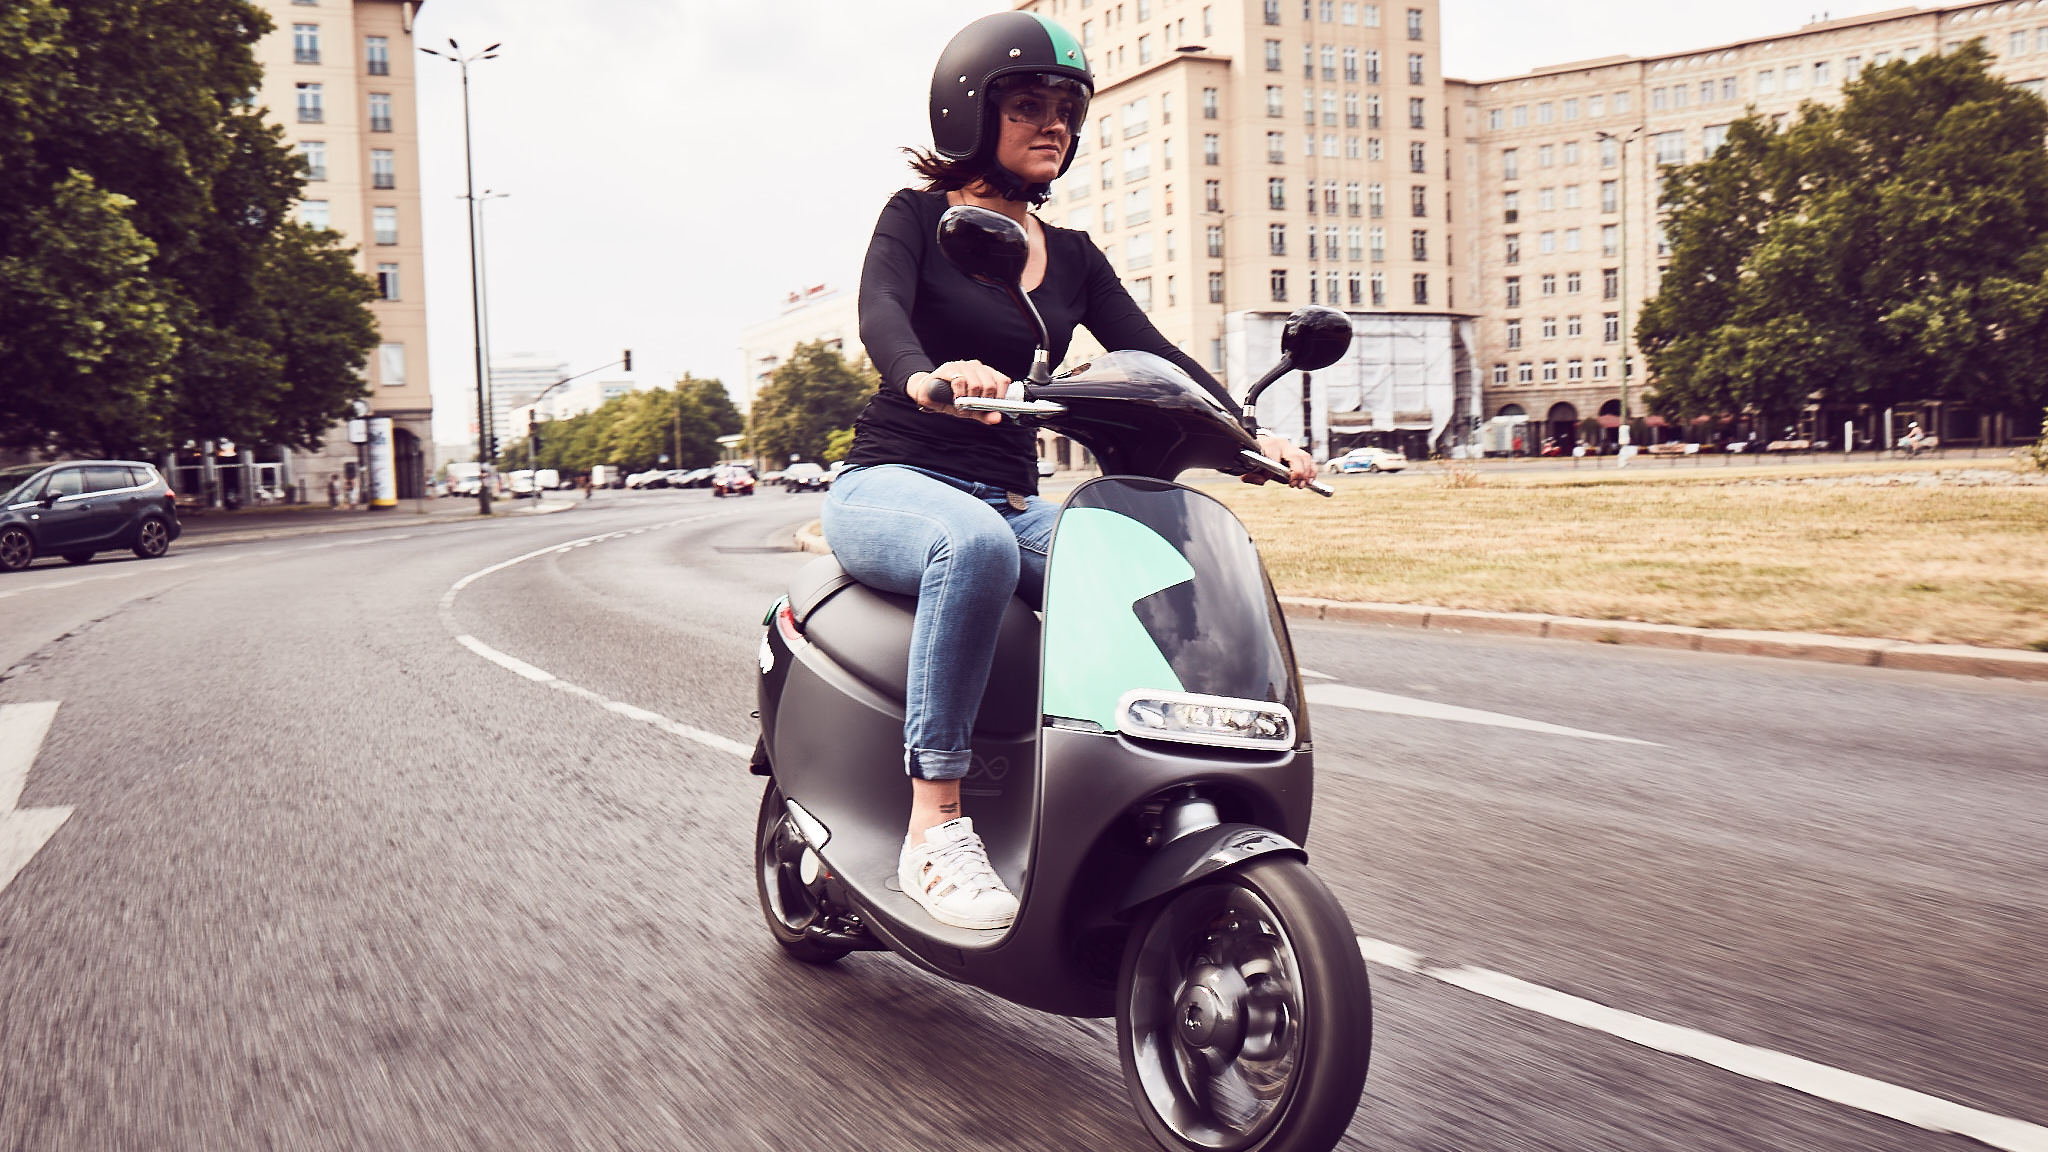 salut paris bosch s e scooter sharing service coup launches in france bosch media service. Black Bedroom Furniture Sets. Home Design Ideas